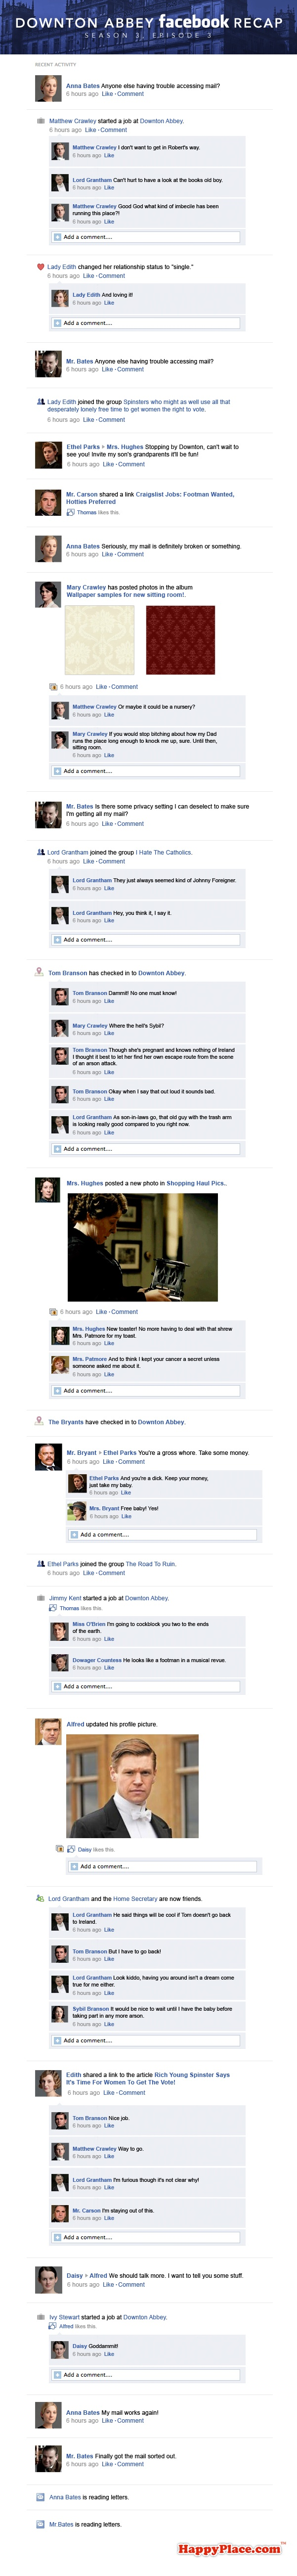 If Downton Abbey took place entirely on Facebook: Season 3, Episode 3.